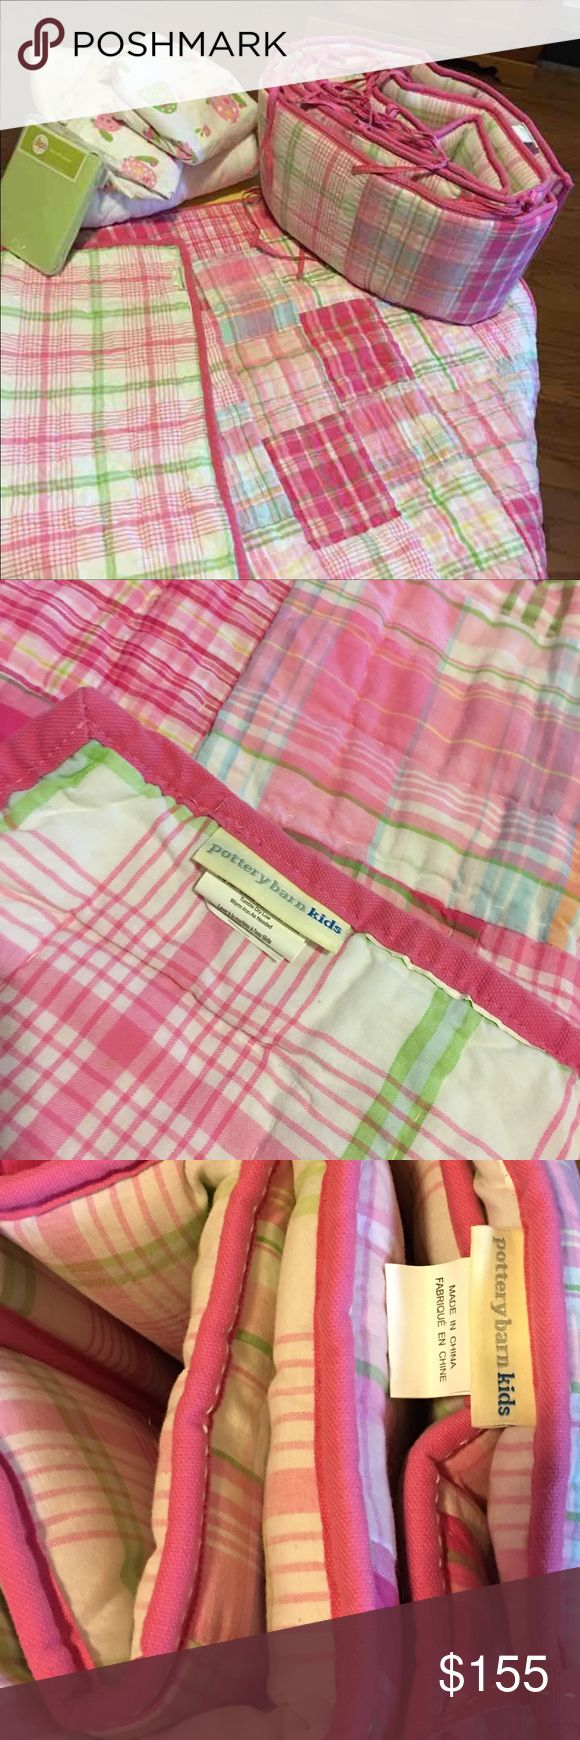 Pottery Barn Crib Bedding DISCONTINUED pink madras crib bedding.  Includes quilt, bumper, and two crib sheets. Also included is a mattress protector and target matching sheet-not pottery barn. ALL EXCELLENT CONDITION.   I am so including a Pottery Barn crib skirt.  Skirt had a slight tear from getting caught in mattress support spring.  Tear is not visible. Other